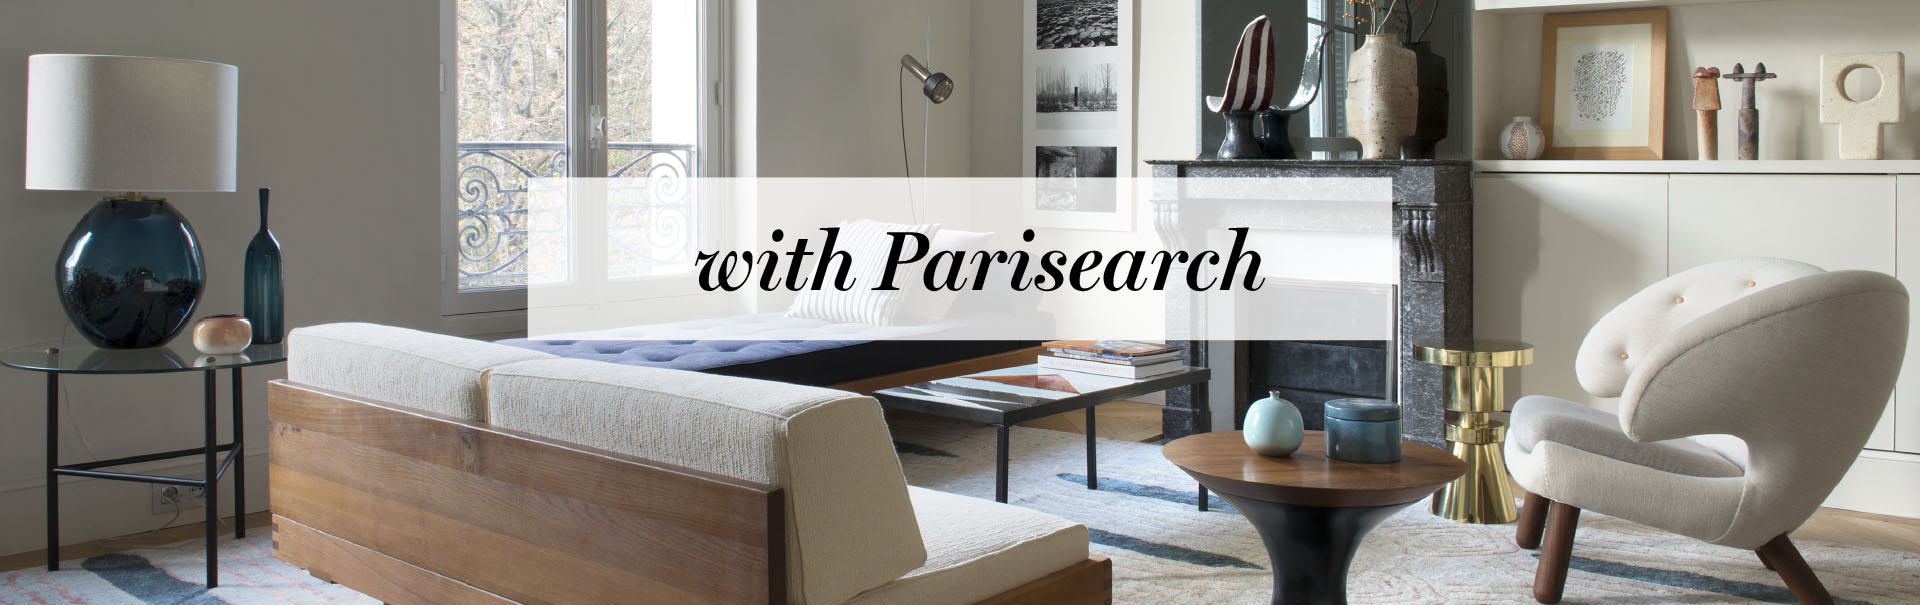 withparisearch-1